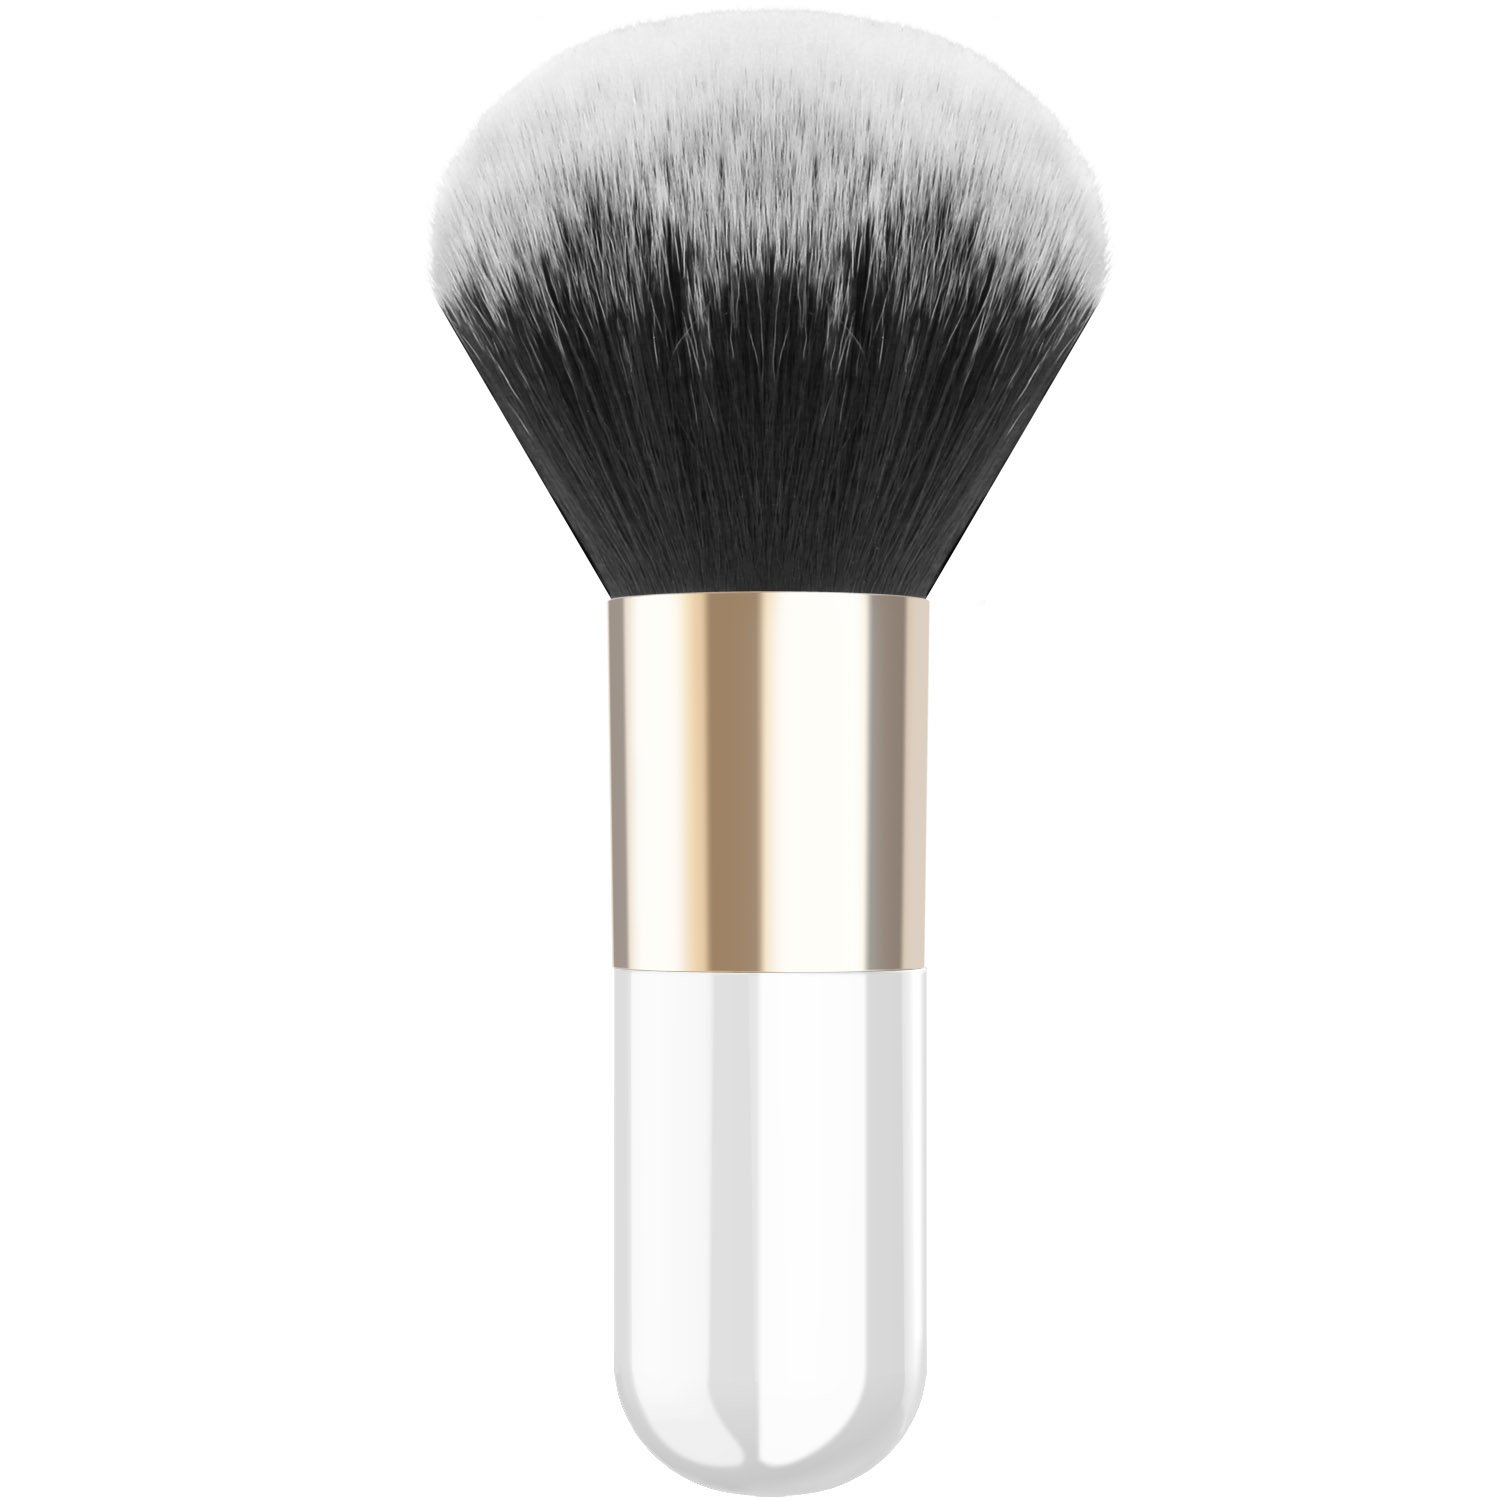 Luxspire Professional Makeup Brush Flat Kabuki Brush, Single Handle Large Round Head Soft Face Mineral Powder Foundation Brush Blush Brush Cosmetics Make Up Tool, White & Gold